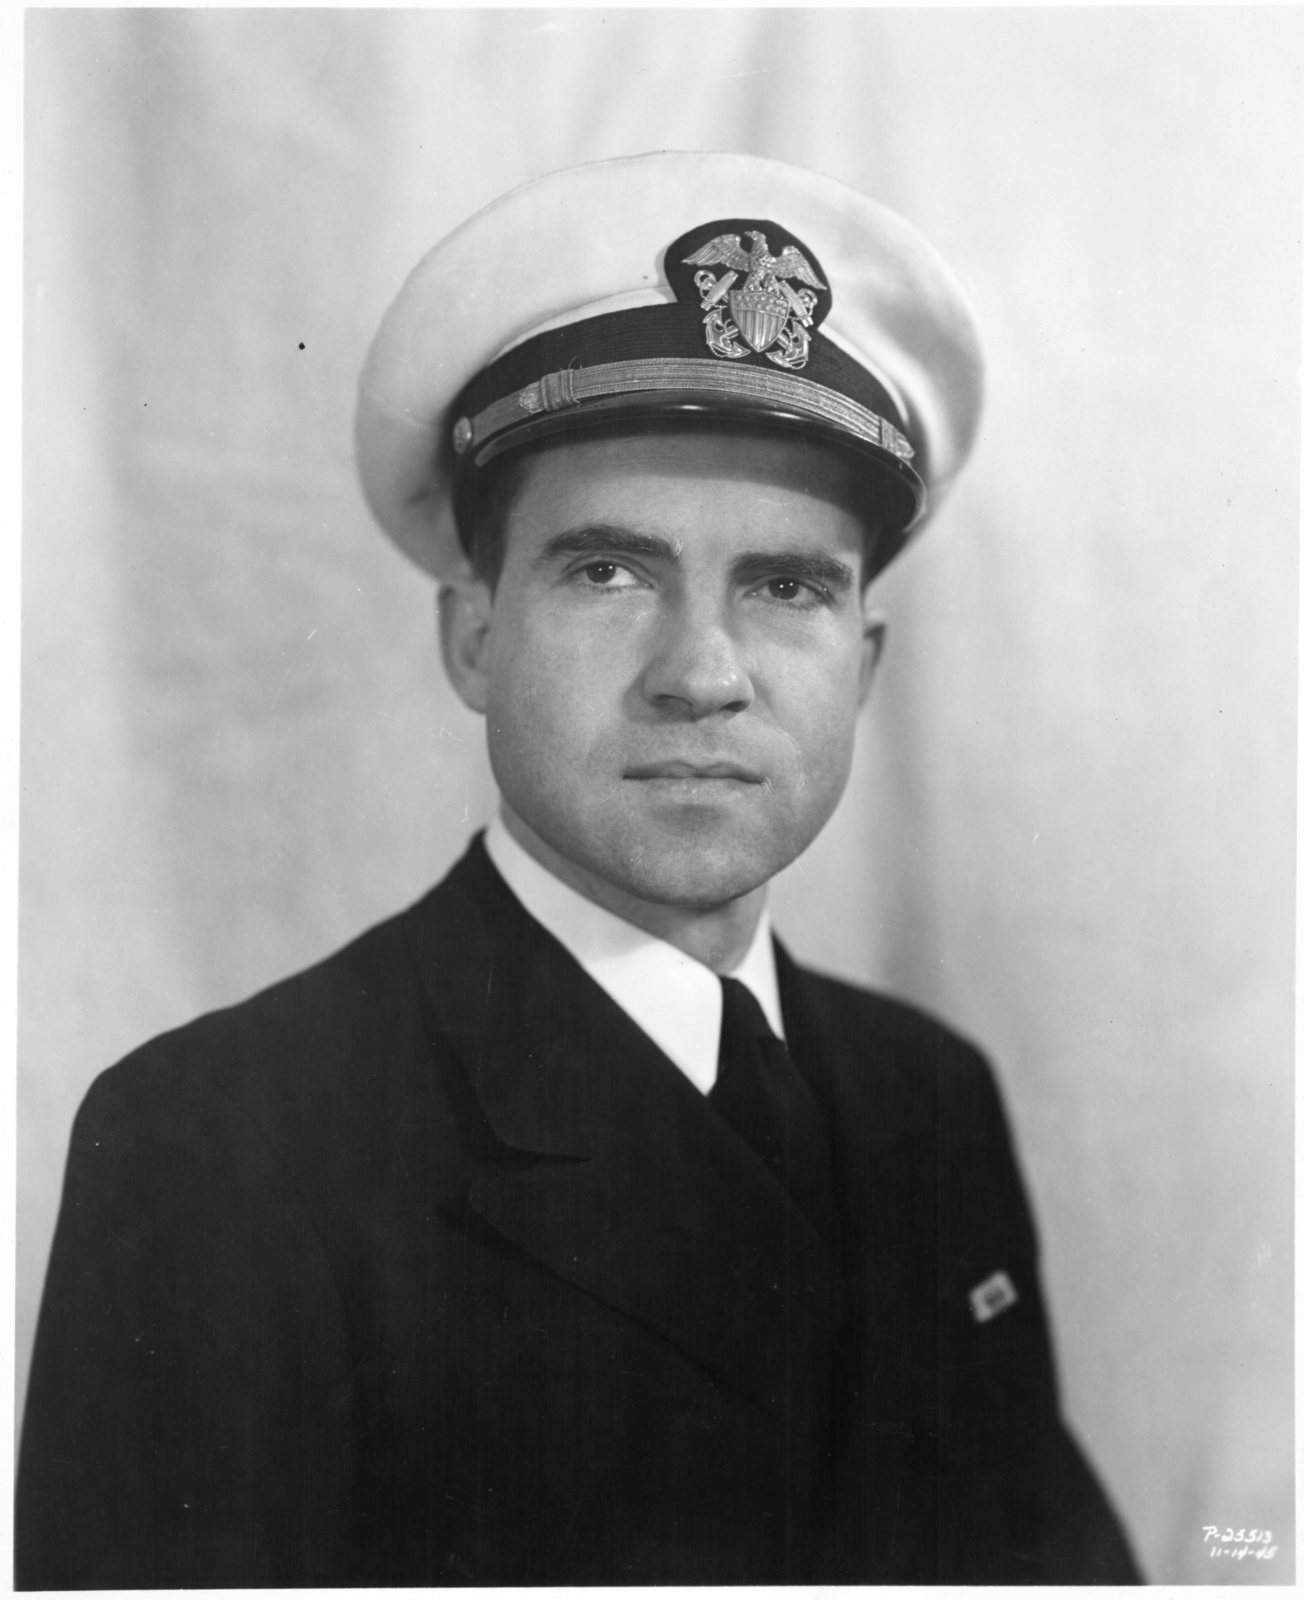 Formal portrait of Lt. Commander Richard Nixon wearing a coat and Navy hat